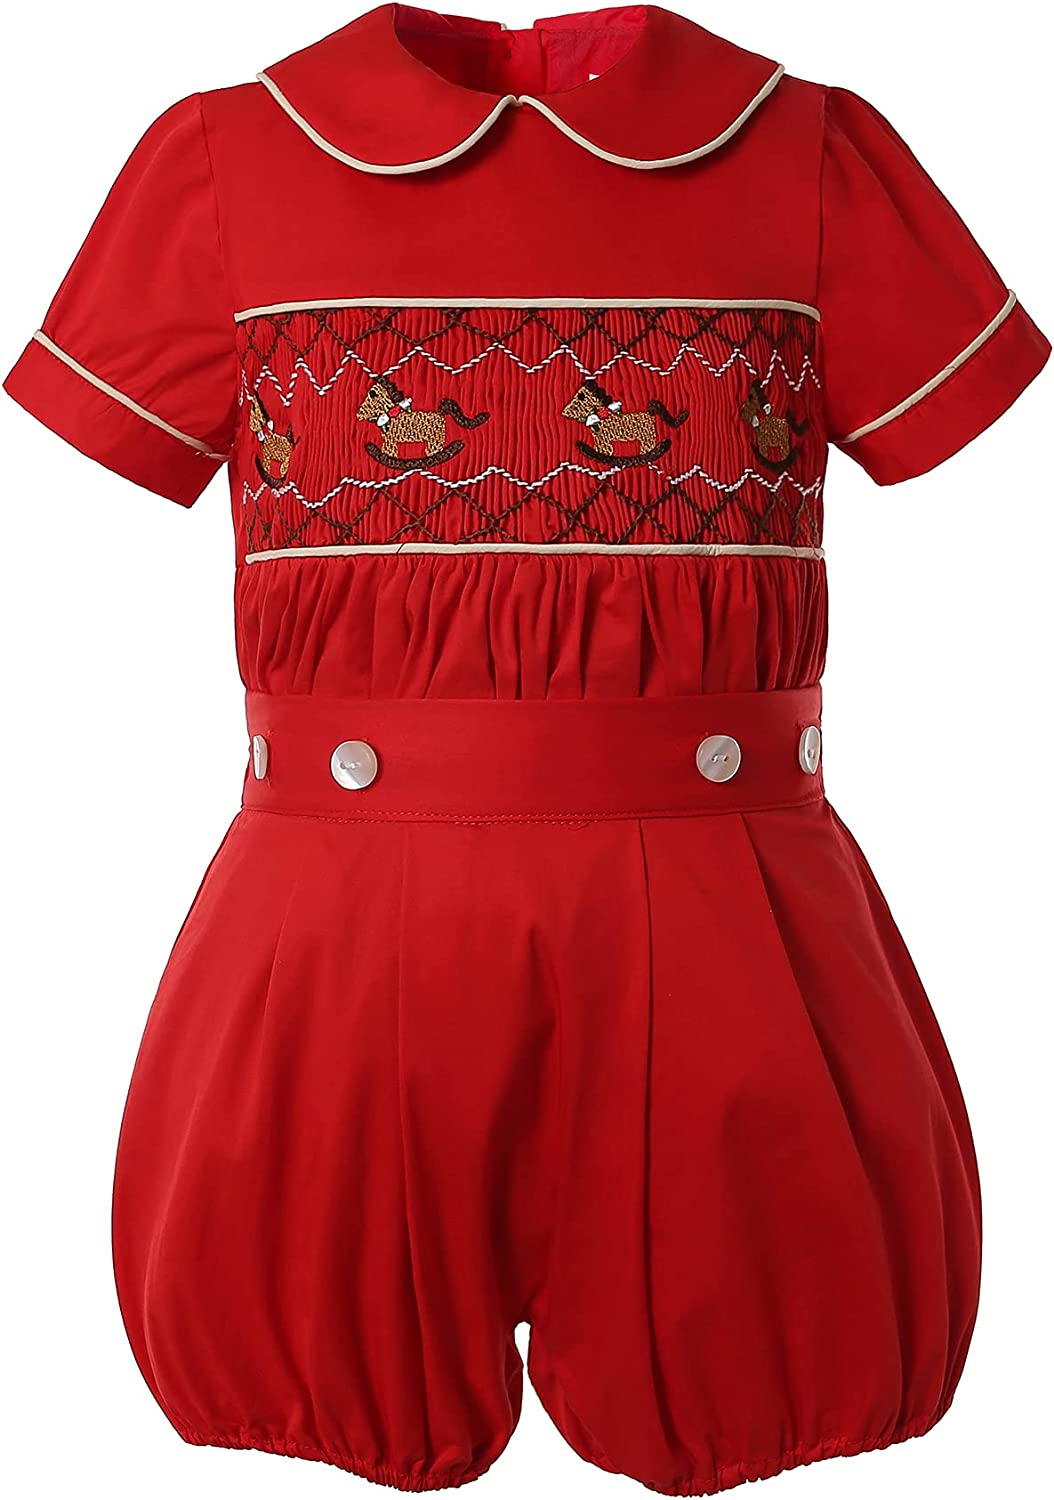 Kids 1950s Clothing & Costumes: Girls, Boys, Toddlers Pettigirl Girls Smocked Dress Unisex Smocked Outfits for Baby Girls Boys Red Christmas Fall Clothes  AT vintagedancer.com